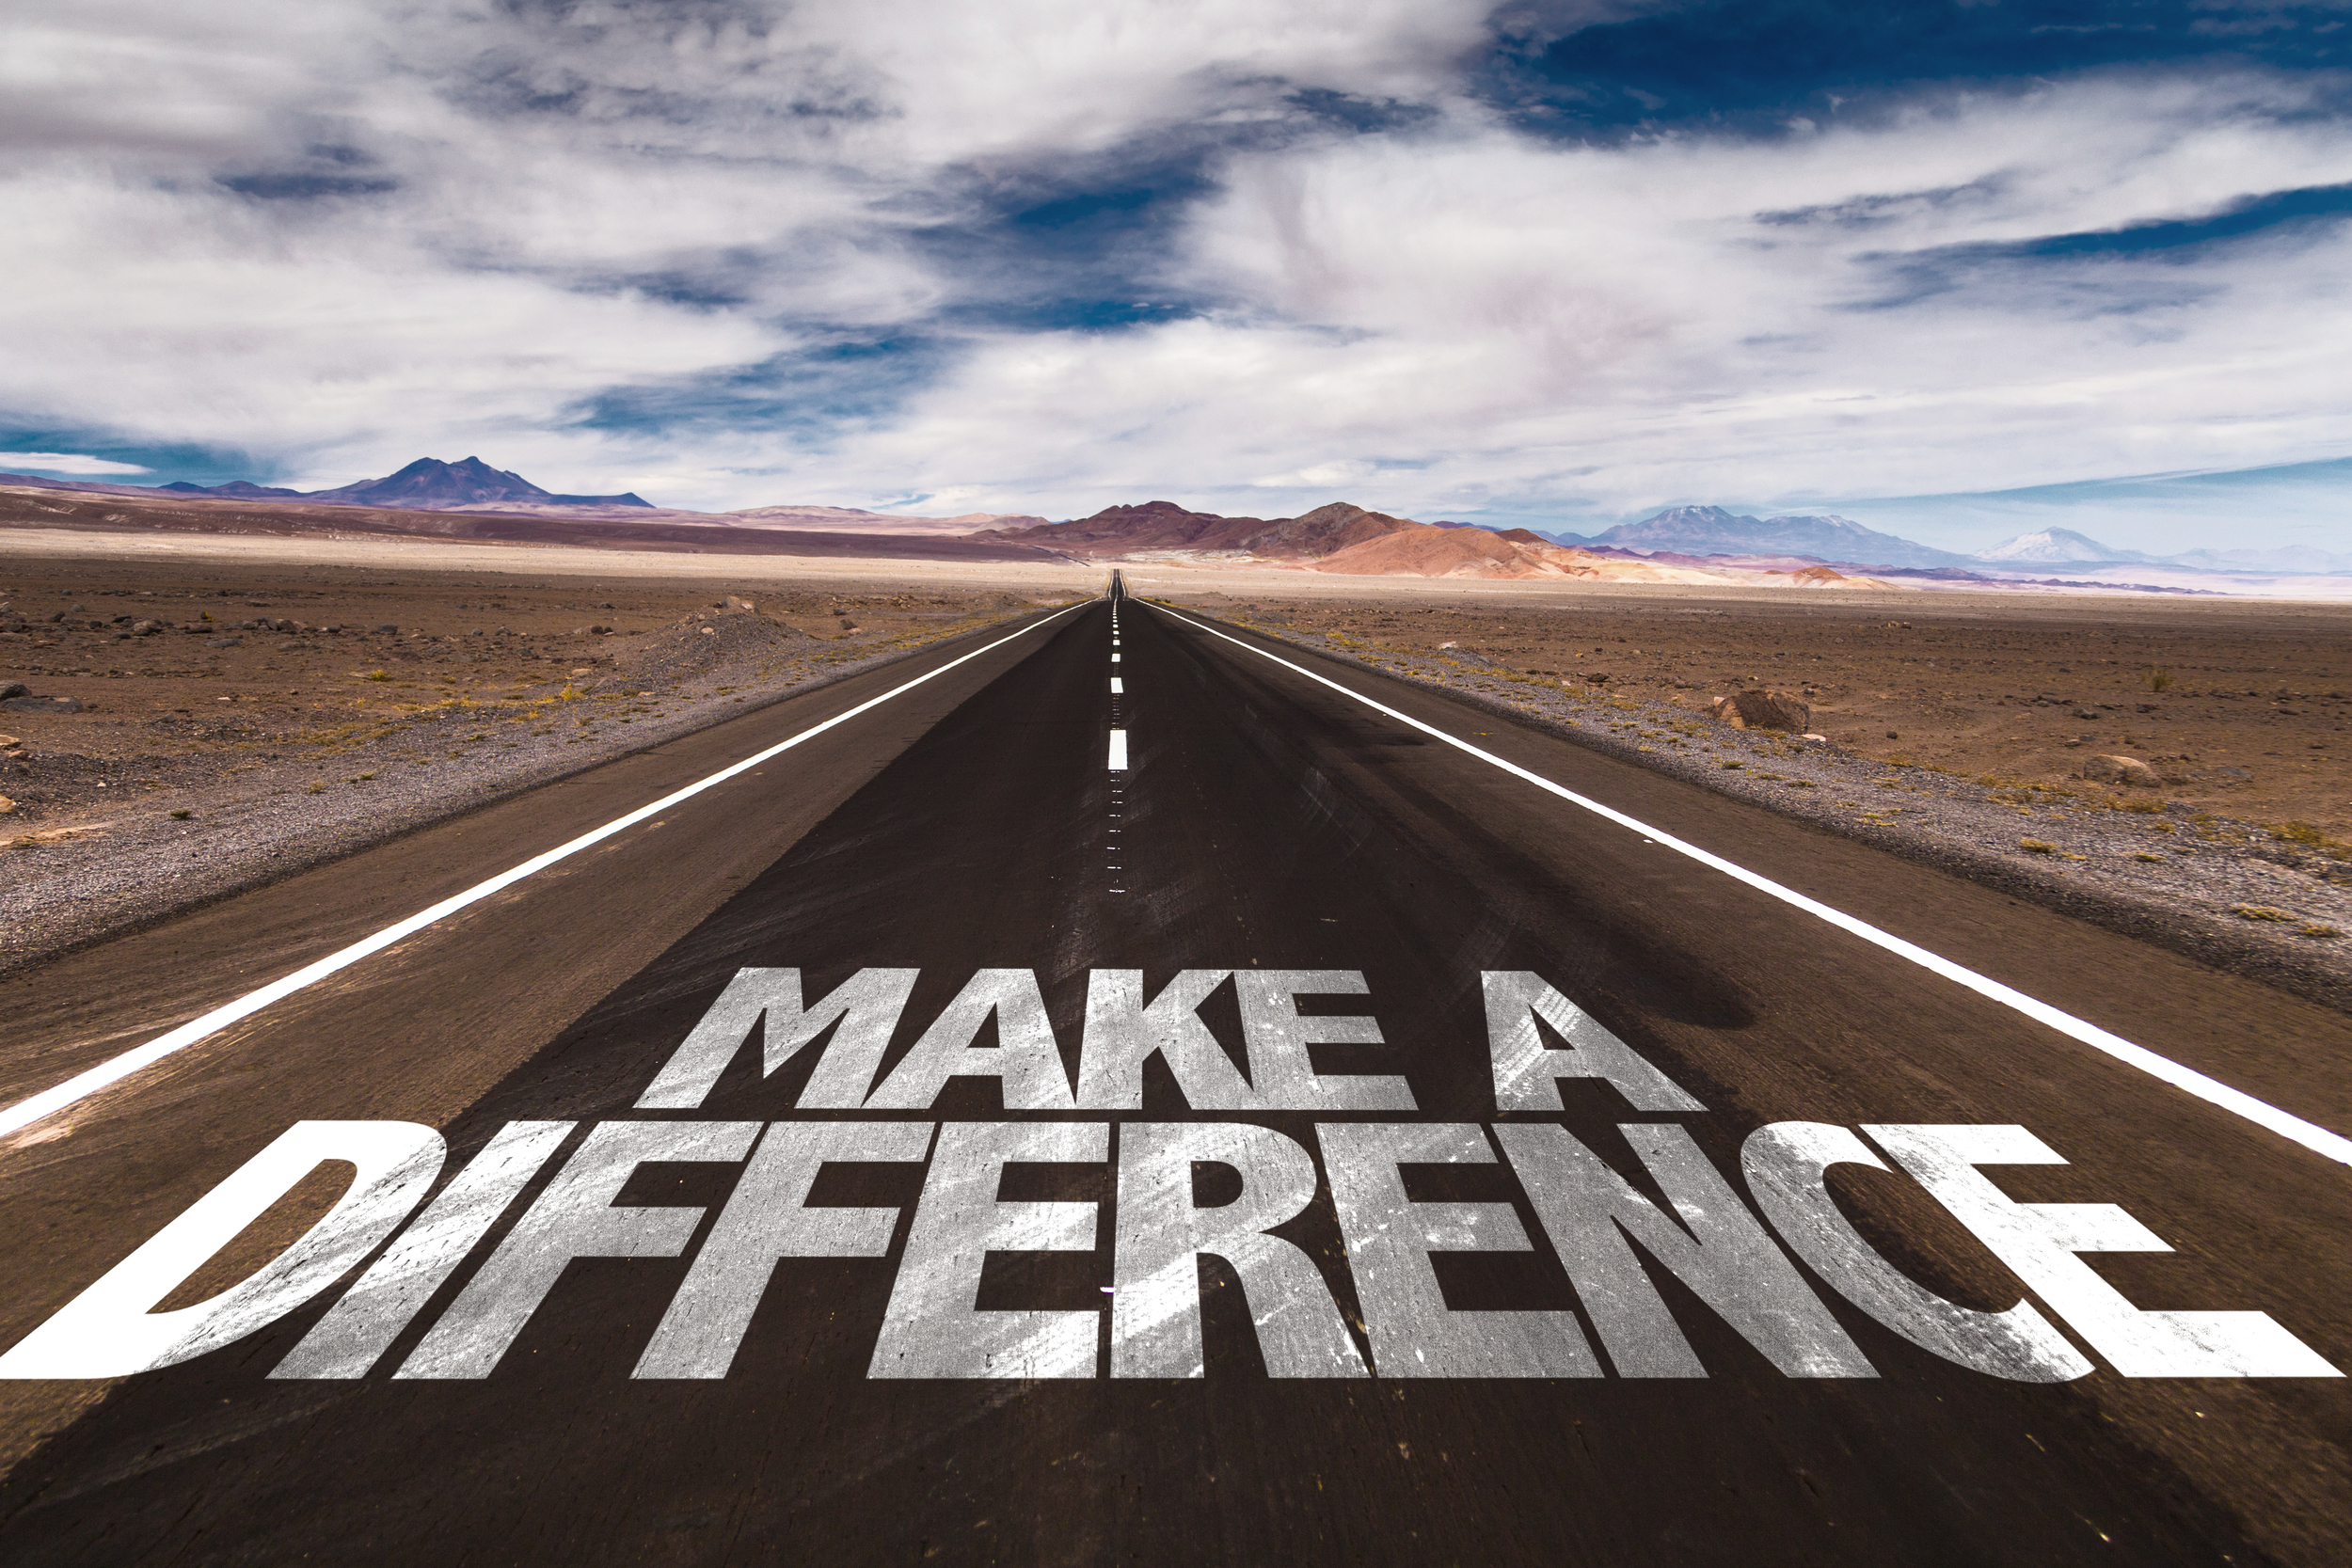 make a difference shutterstock_320094980.jpg